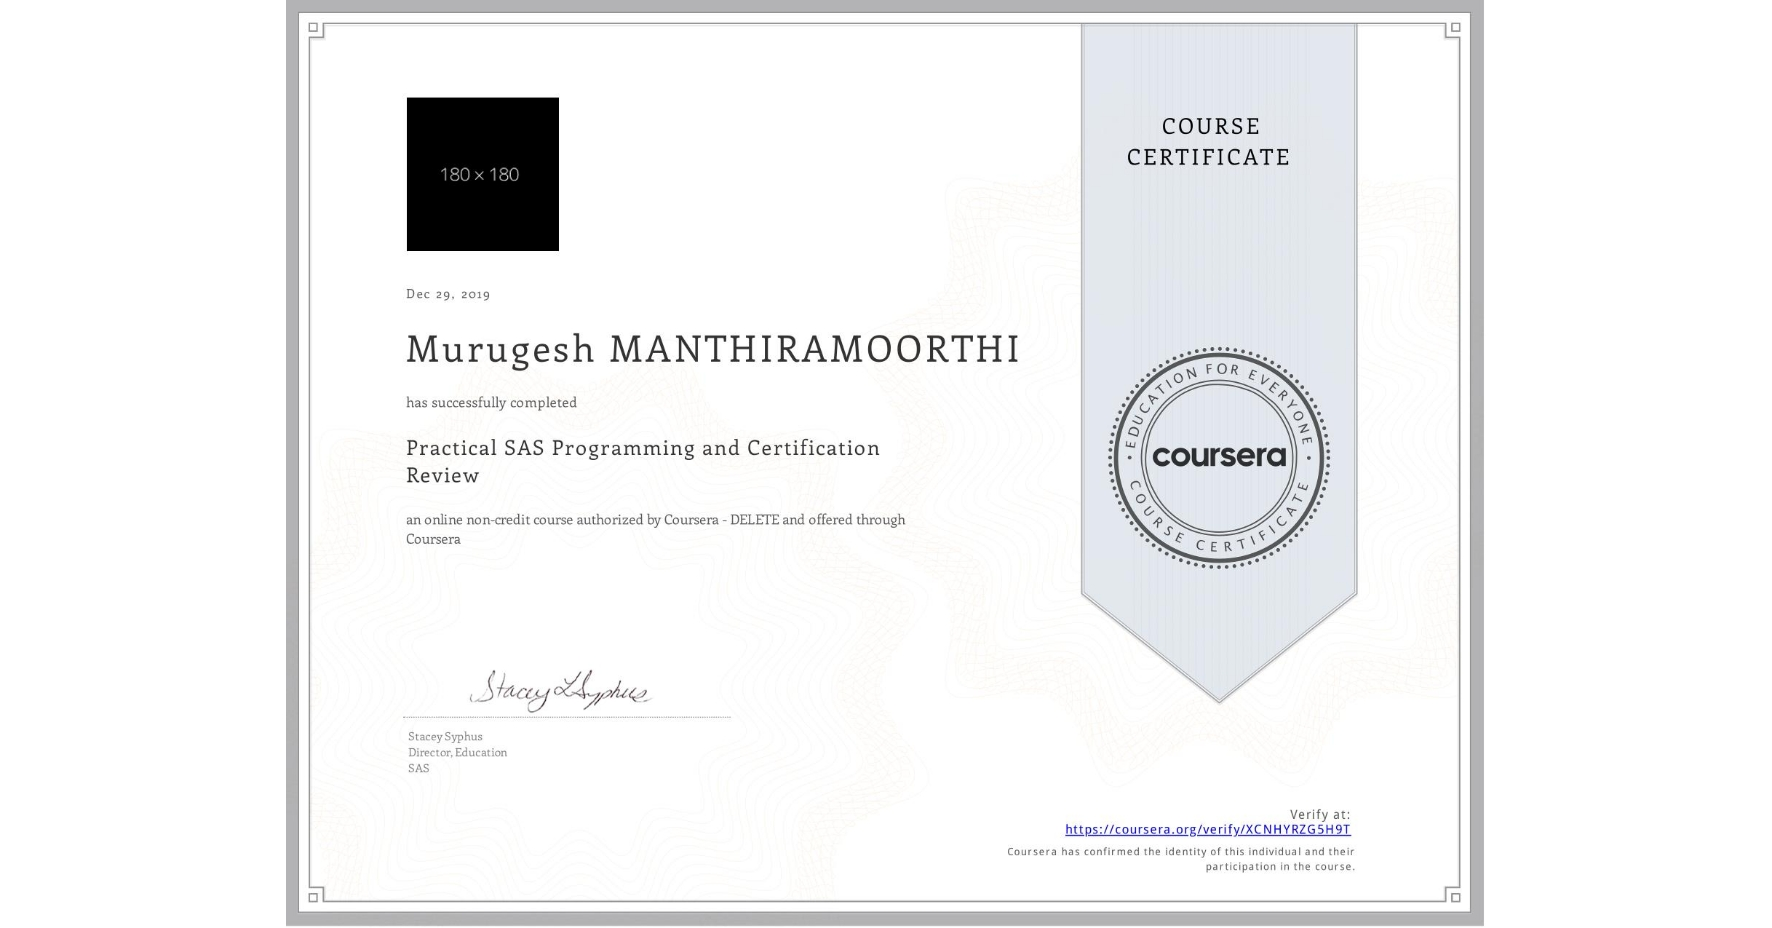 View certificate for Murugesh Manthiramoorthi, Practical SAS Programming and Certification Review, an online non-credit course authorized by SAS and offered through Coursera